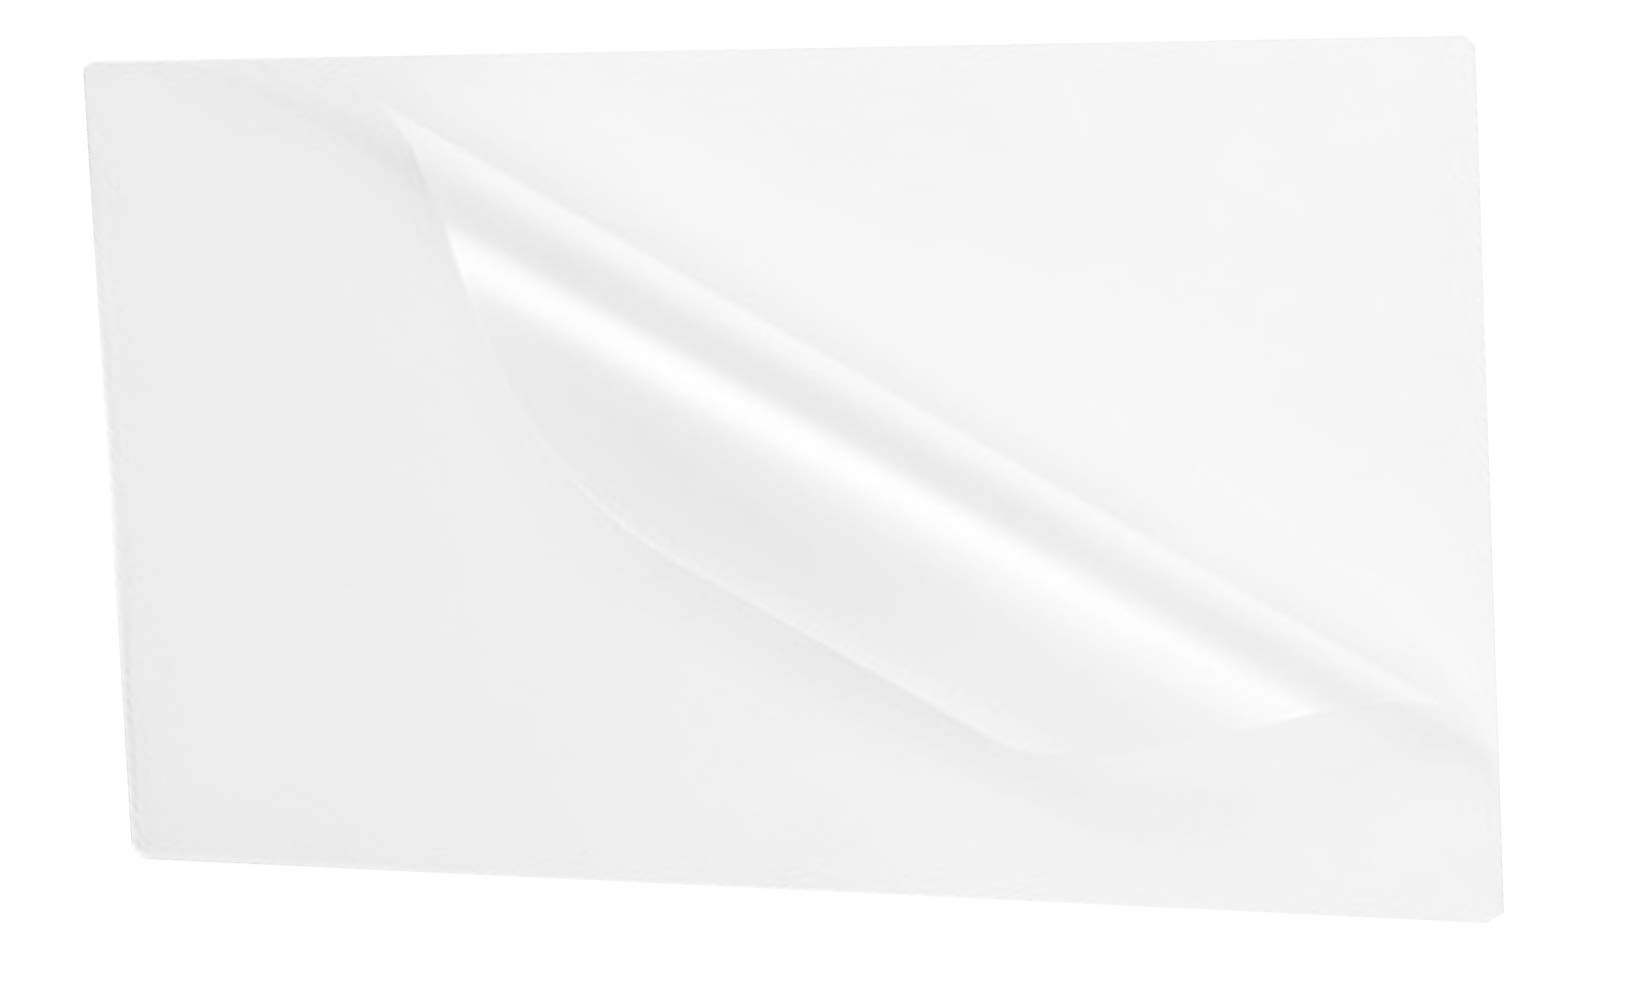 Qty 200 5 Mil Double Letter Laminating Pouches 11-1/2 x 17-1/2 Hot Laminator Sleeves